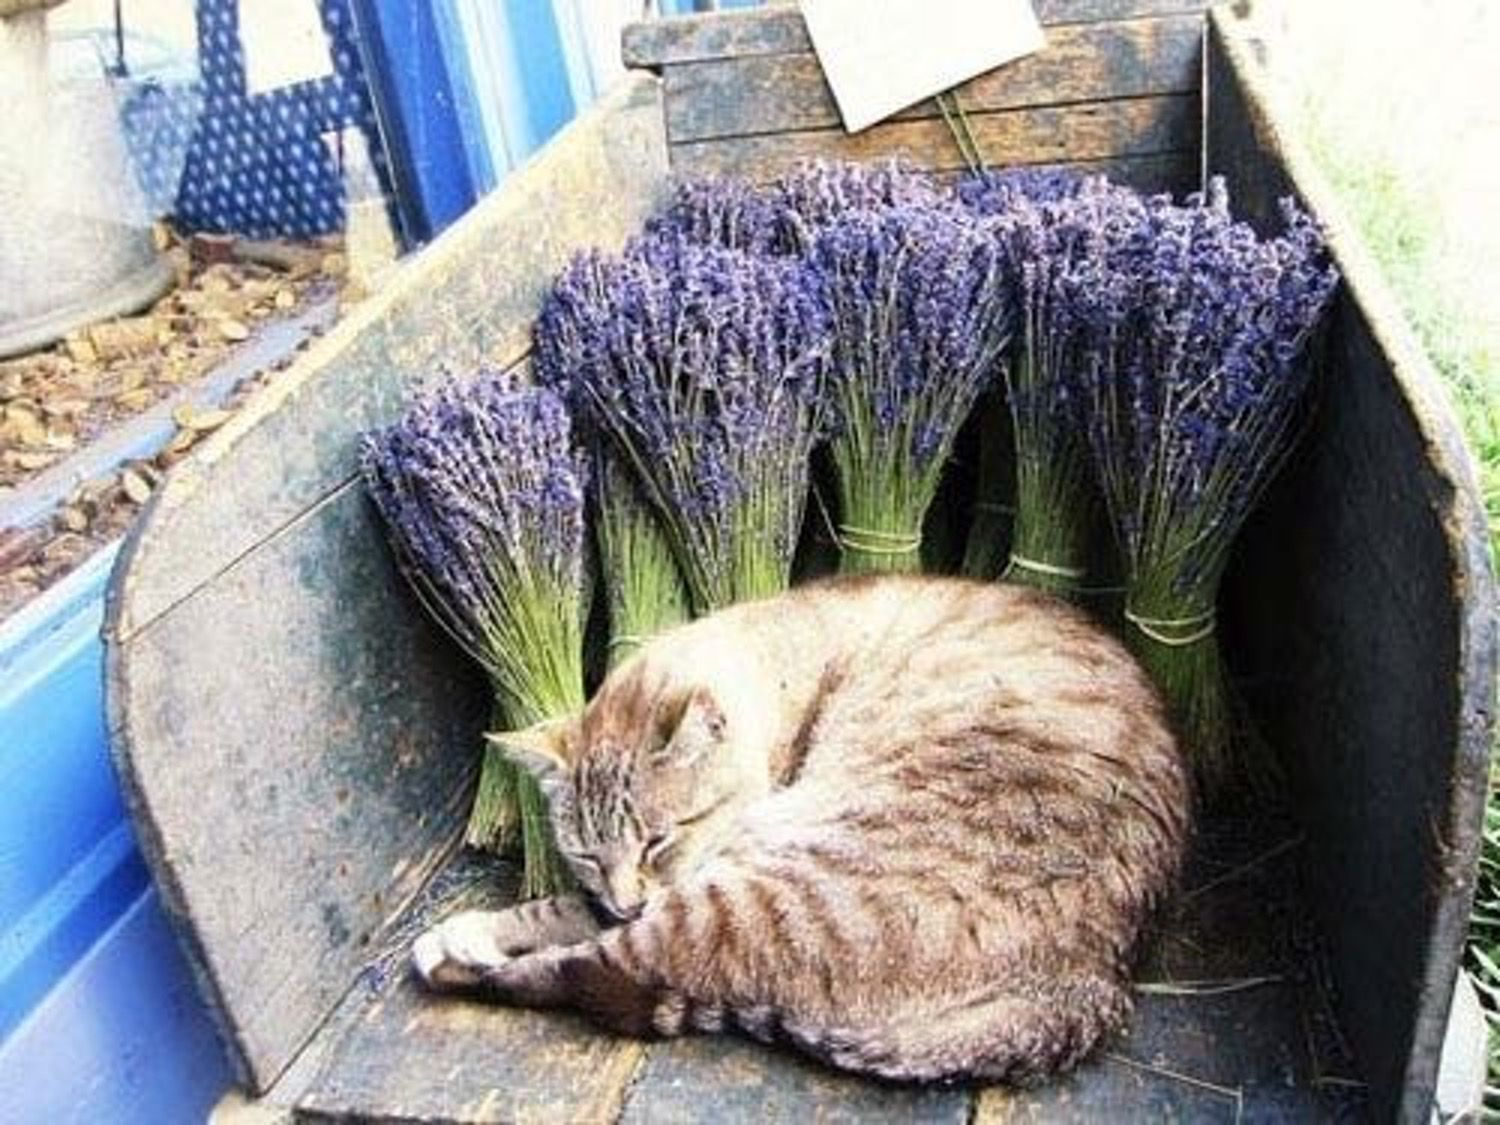 Are Essential Oils Like Lavender Safe for Cats? Cat